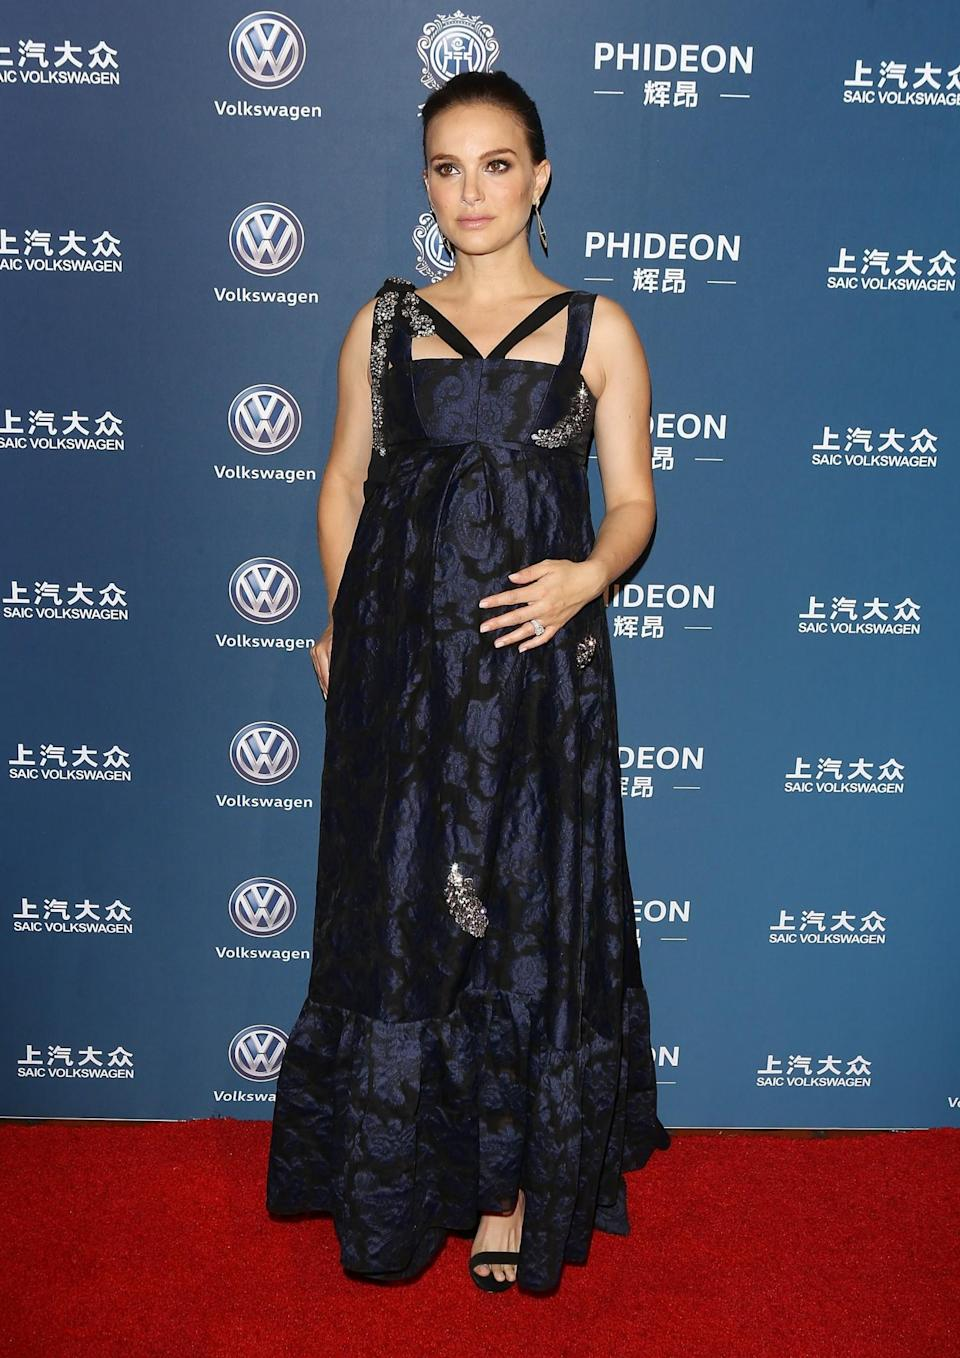 <p>The actress chose a navy blue brocade Erdem dress for an awards event in LA in mid-December. The full-length gown skimmed the star's bump and featured embellishments and a cross-bodice design. [Photo: Getty] </p>